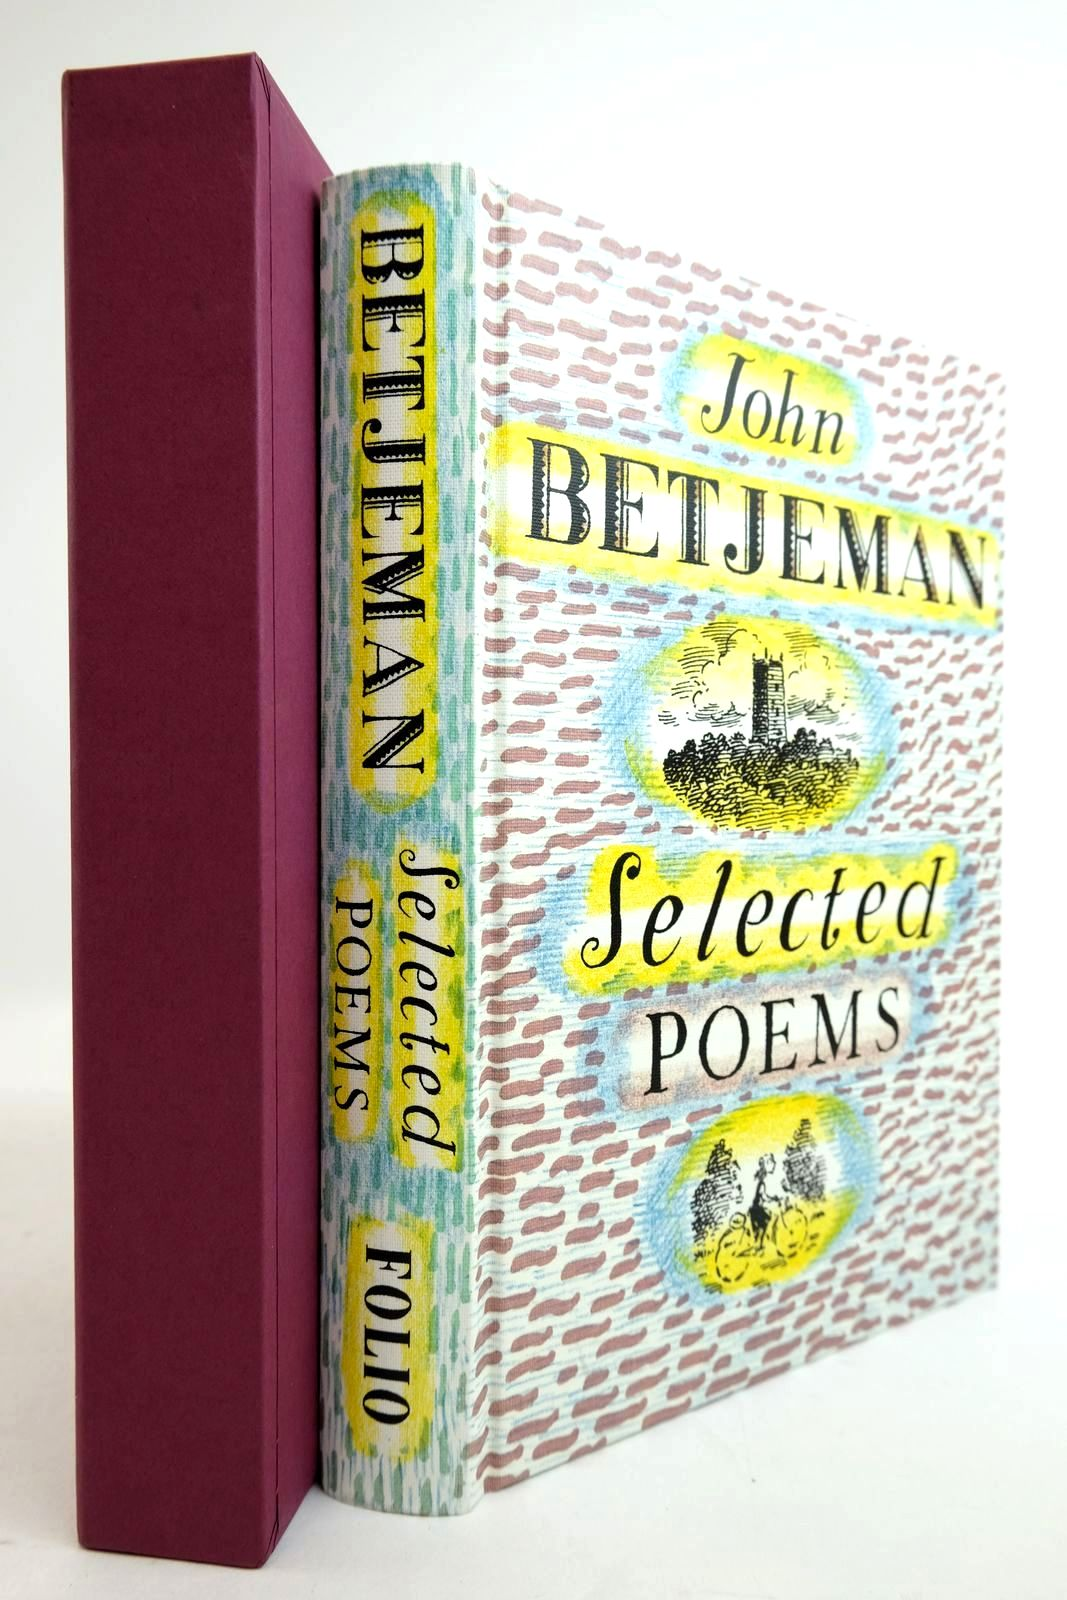 Photo of JOHN BETJEMAN SELECTED POEMS written by Betjeman, John Powers, Alan illustrated by Bailey, Peter published by Folio Society (STOCK CODE: 2134359)  for sale by Stella & Rose's Books